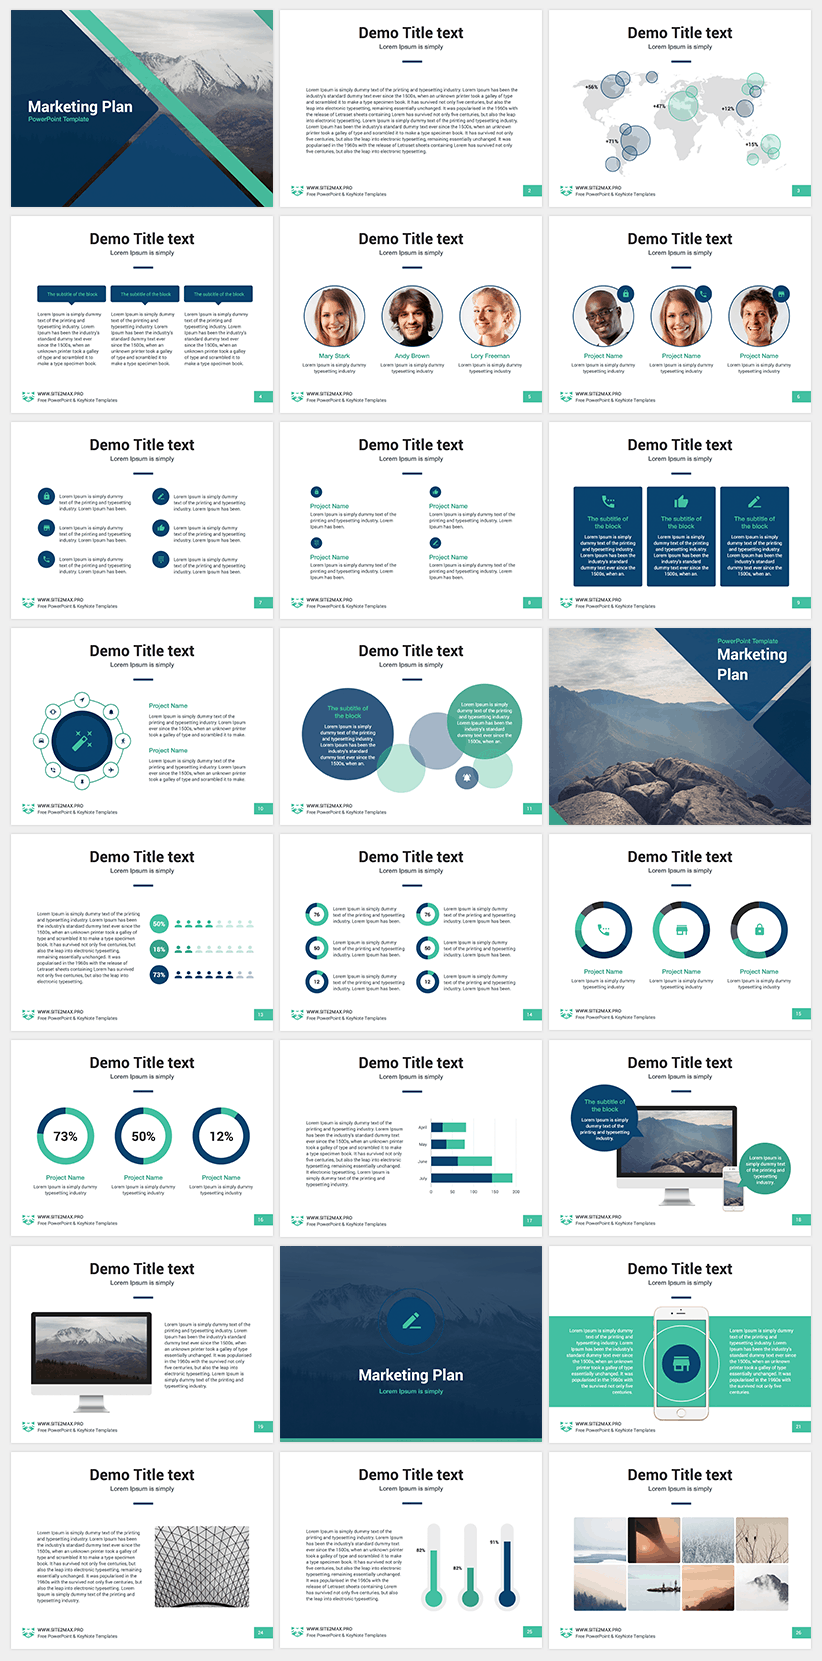 Free Powerpoint Template - Marketing Plan